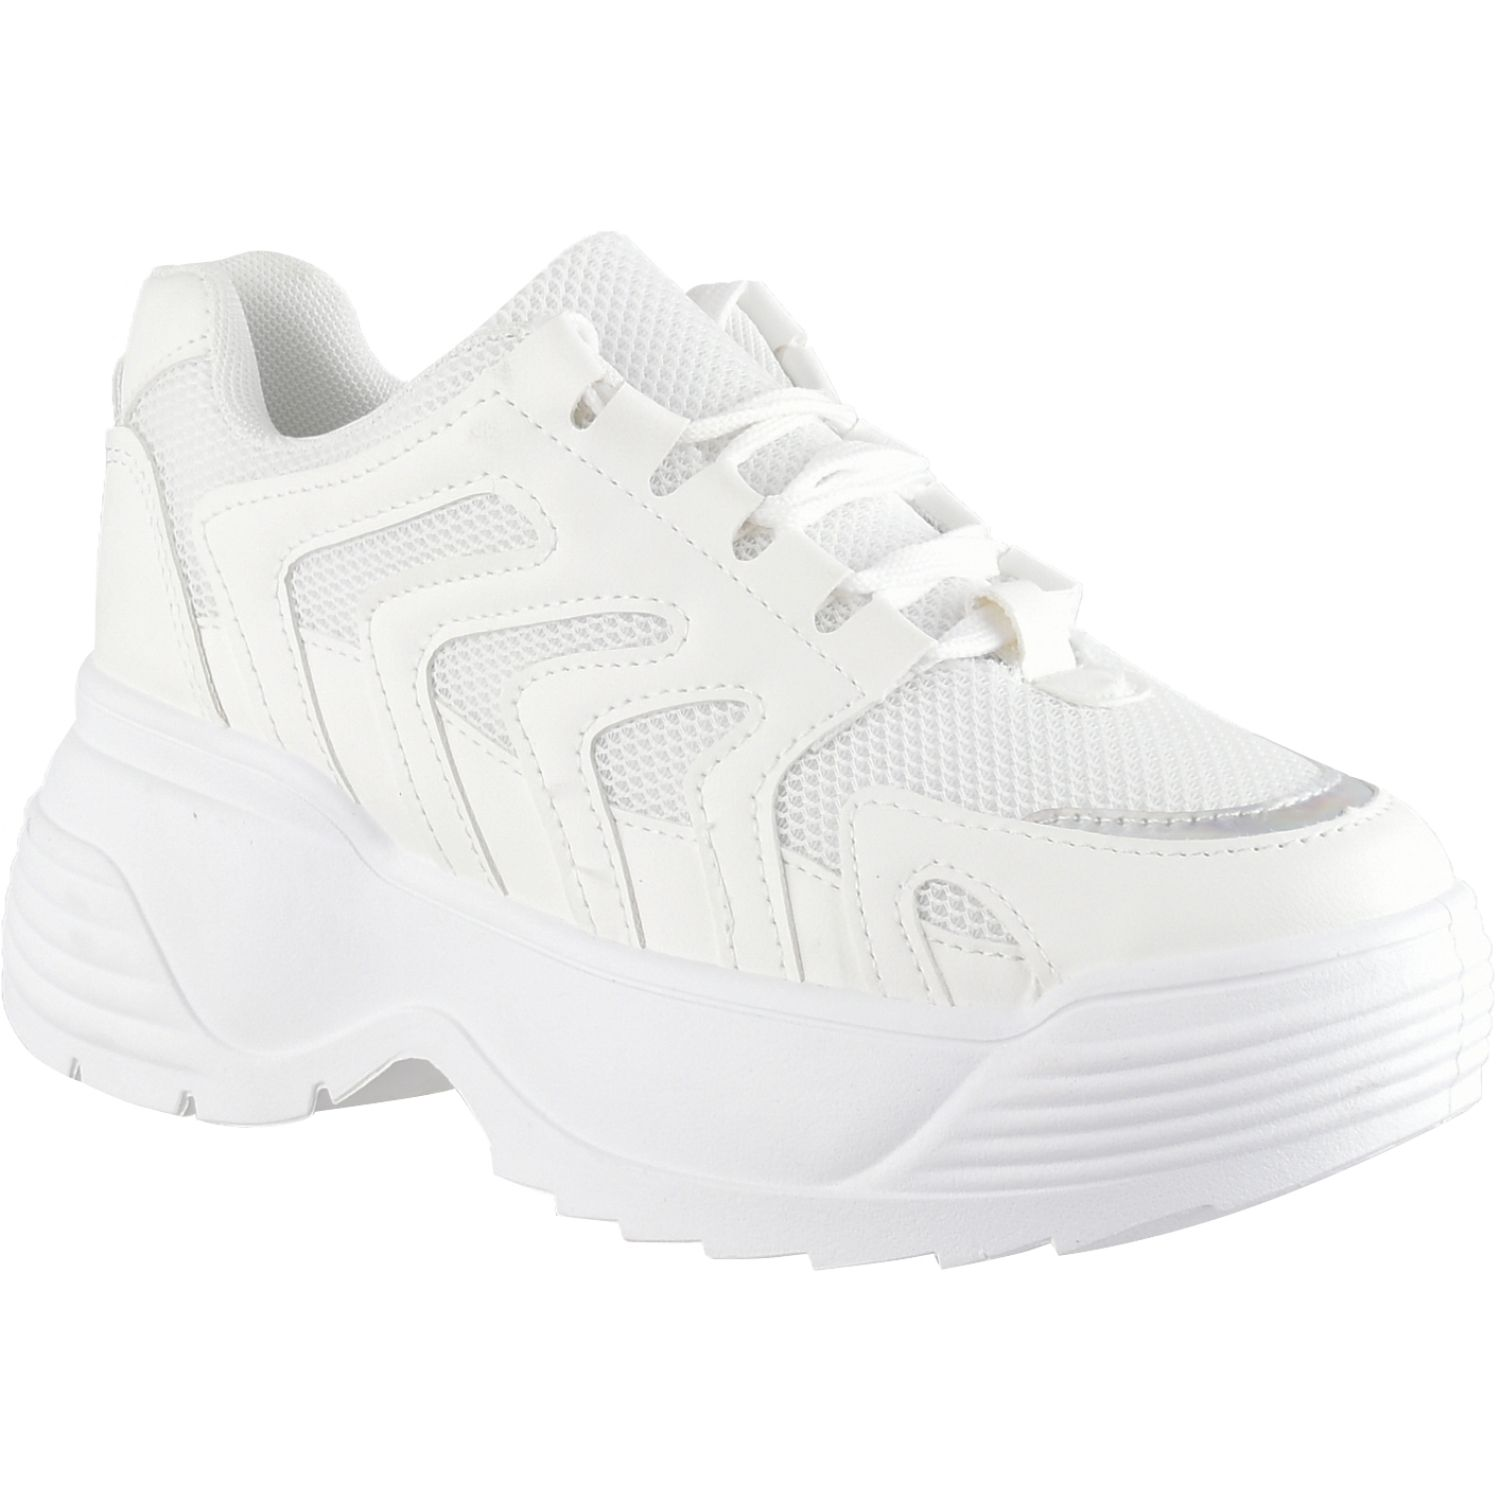 Platanitos Z 4121 Blanco Zapatillas Fashion